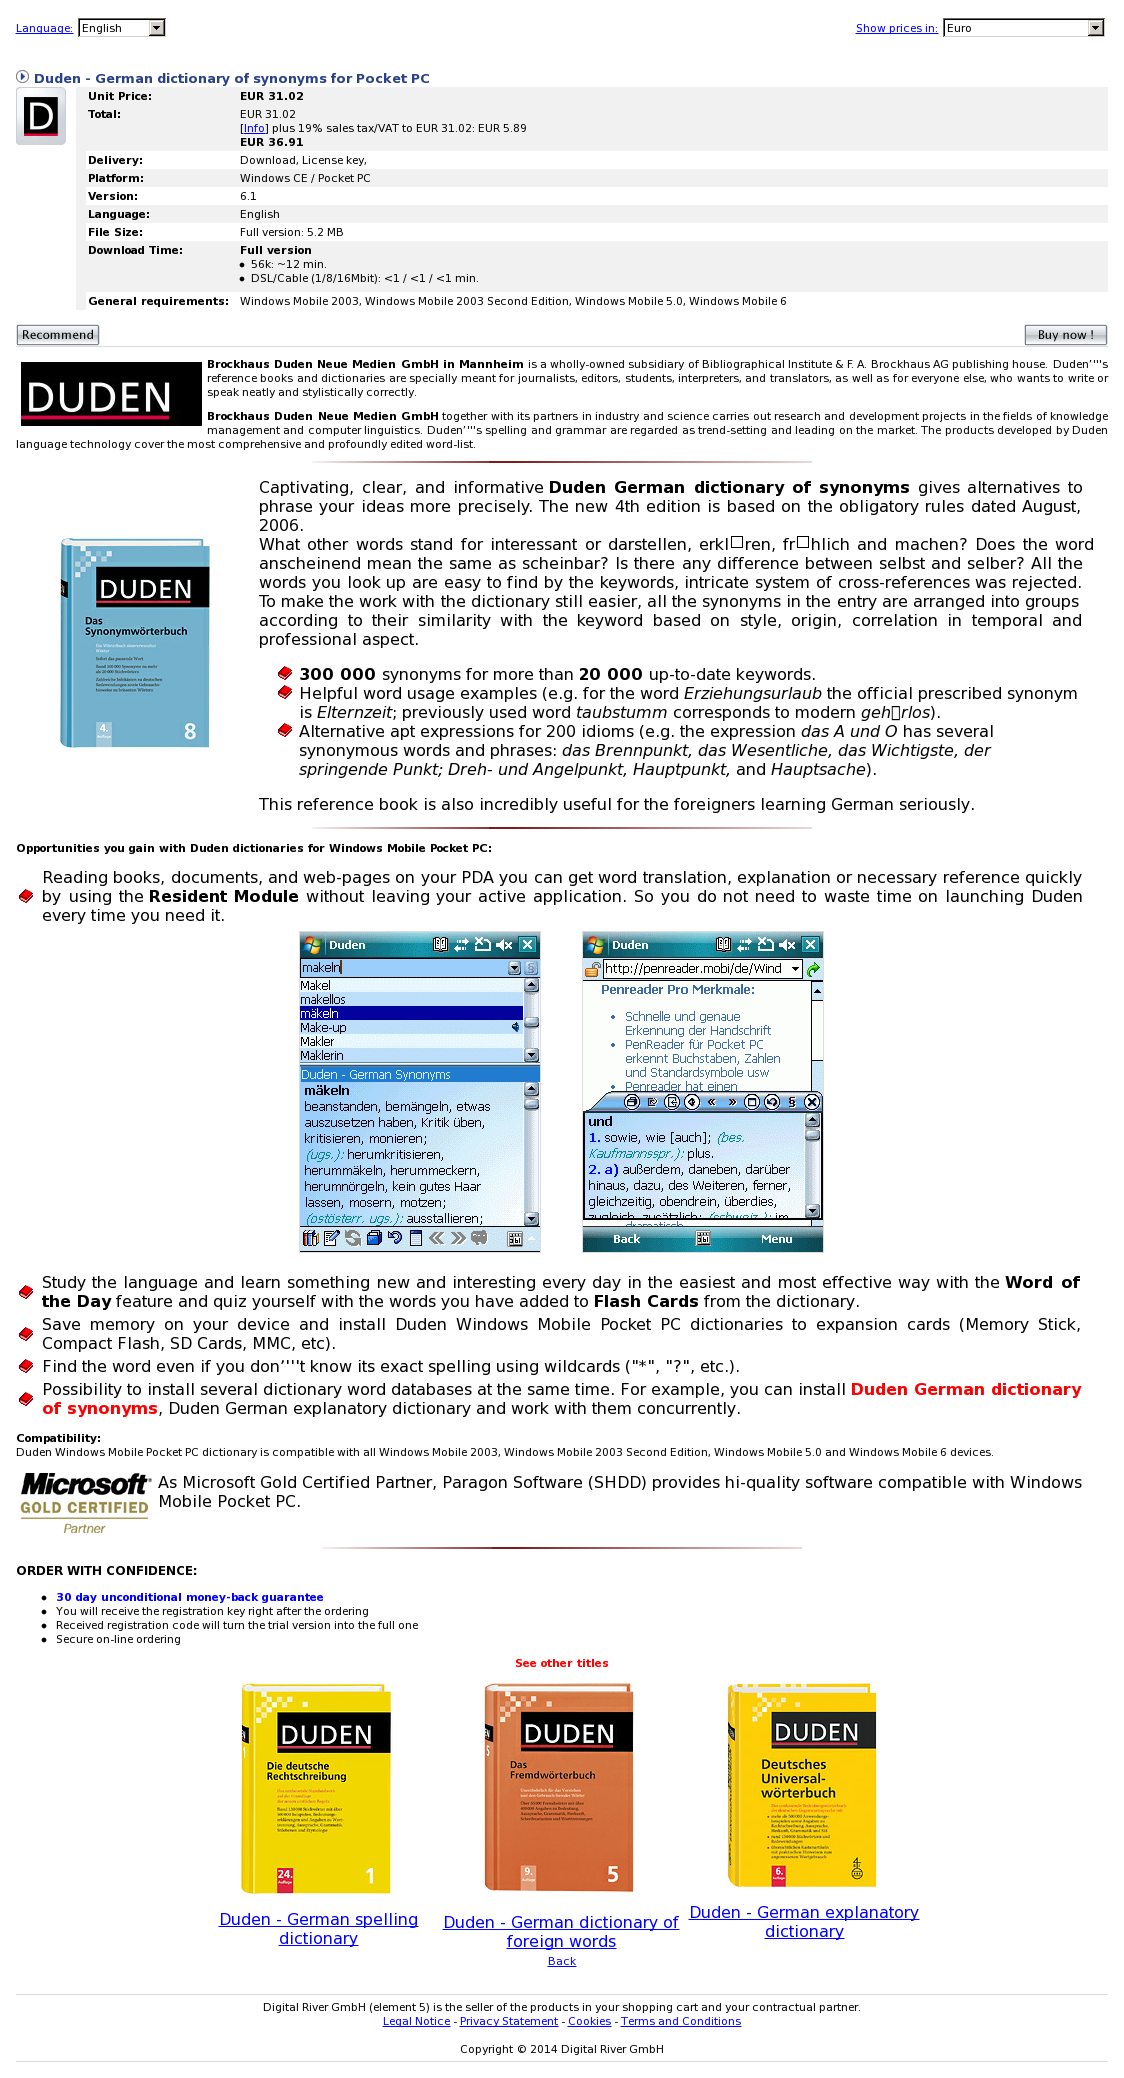 Duden - German dictionary of synonyms for Pocket PC